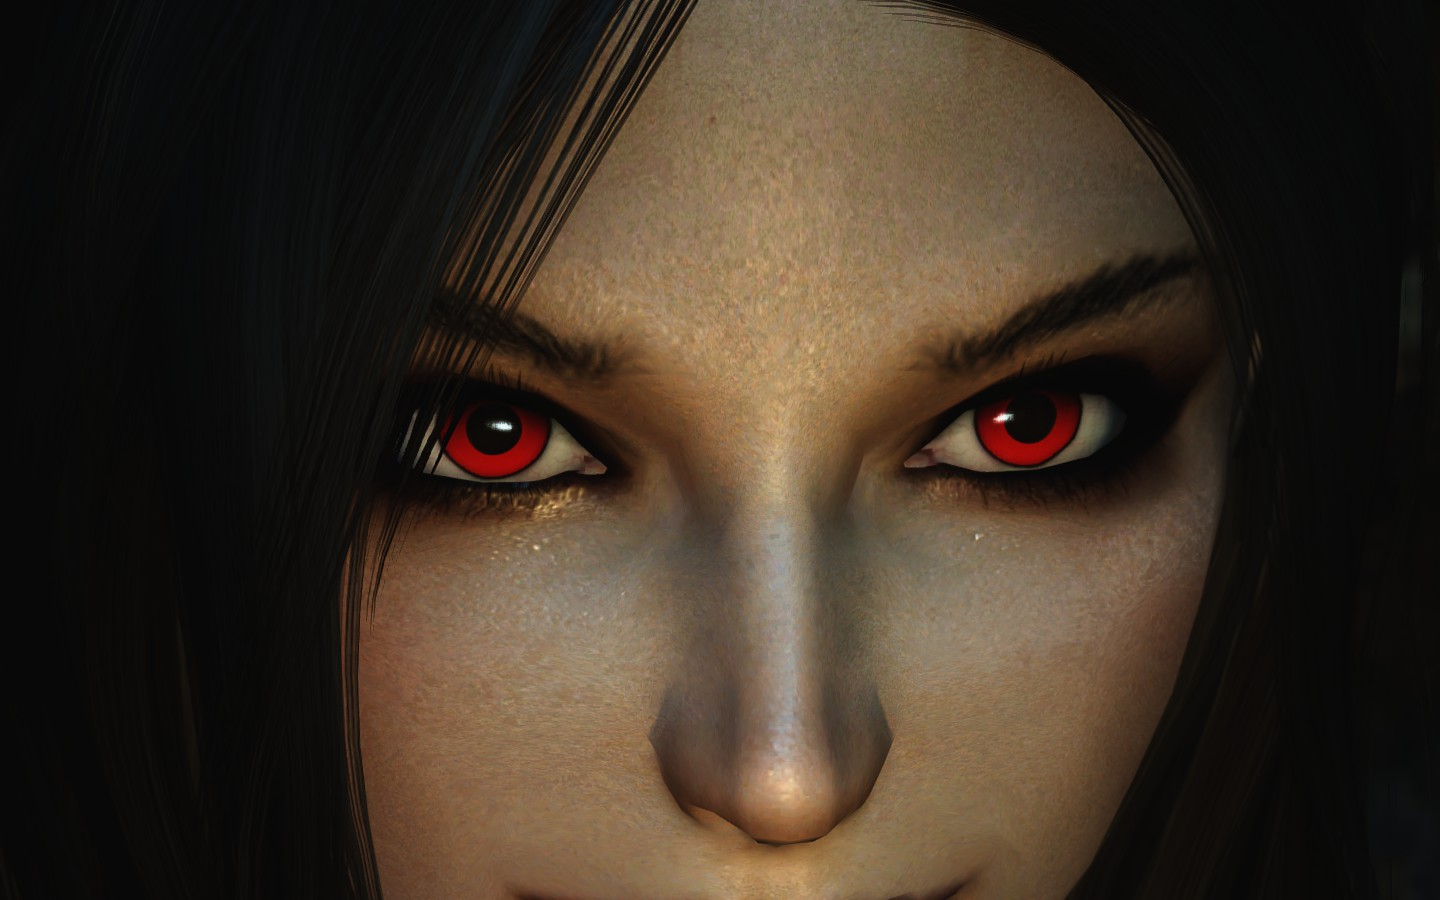 Steam Community :: Guide :: How To Make A Beautiful Female